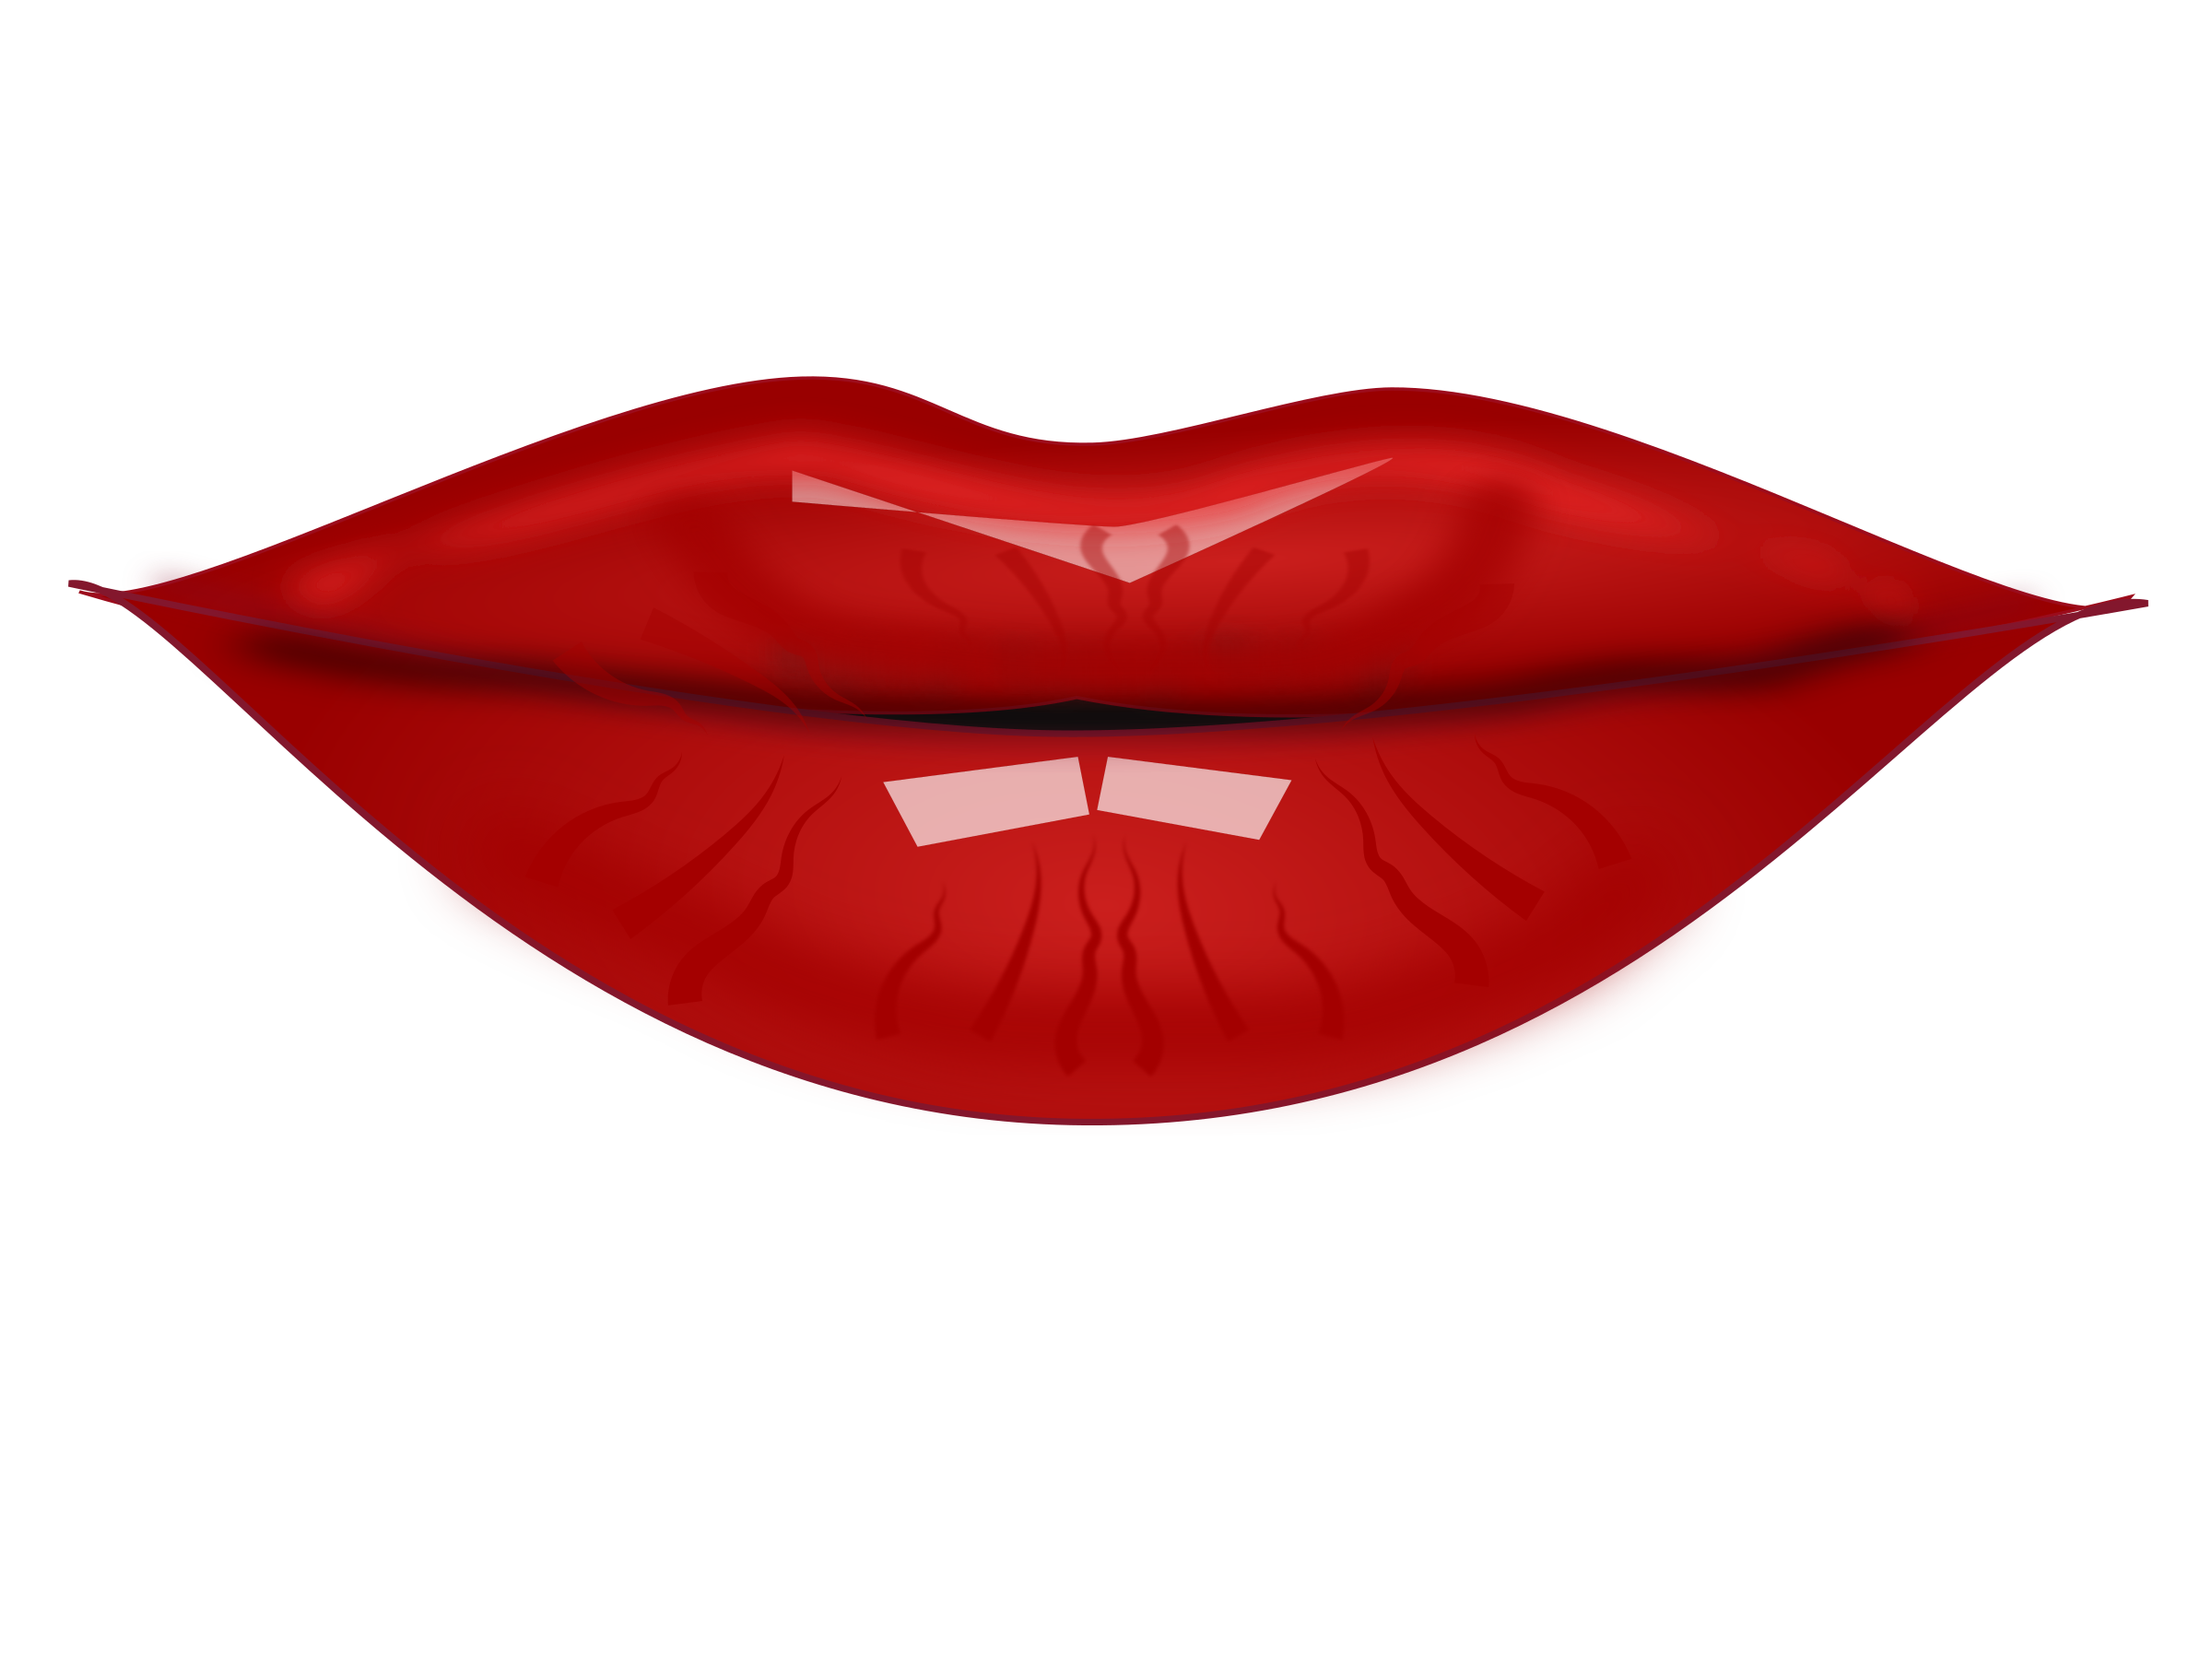 Clipart Lips By Netalloy-Clipart lips by netalloy-1